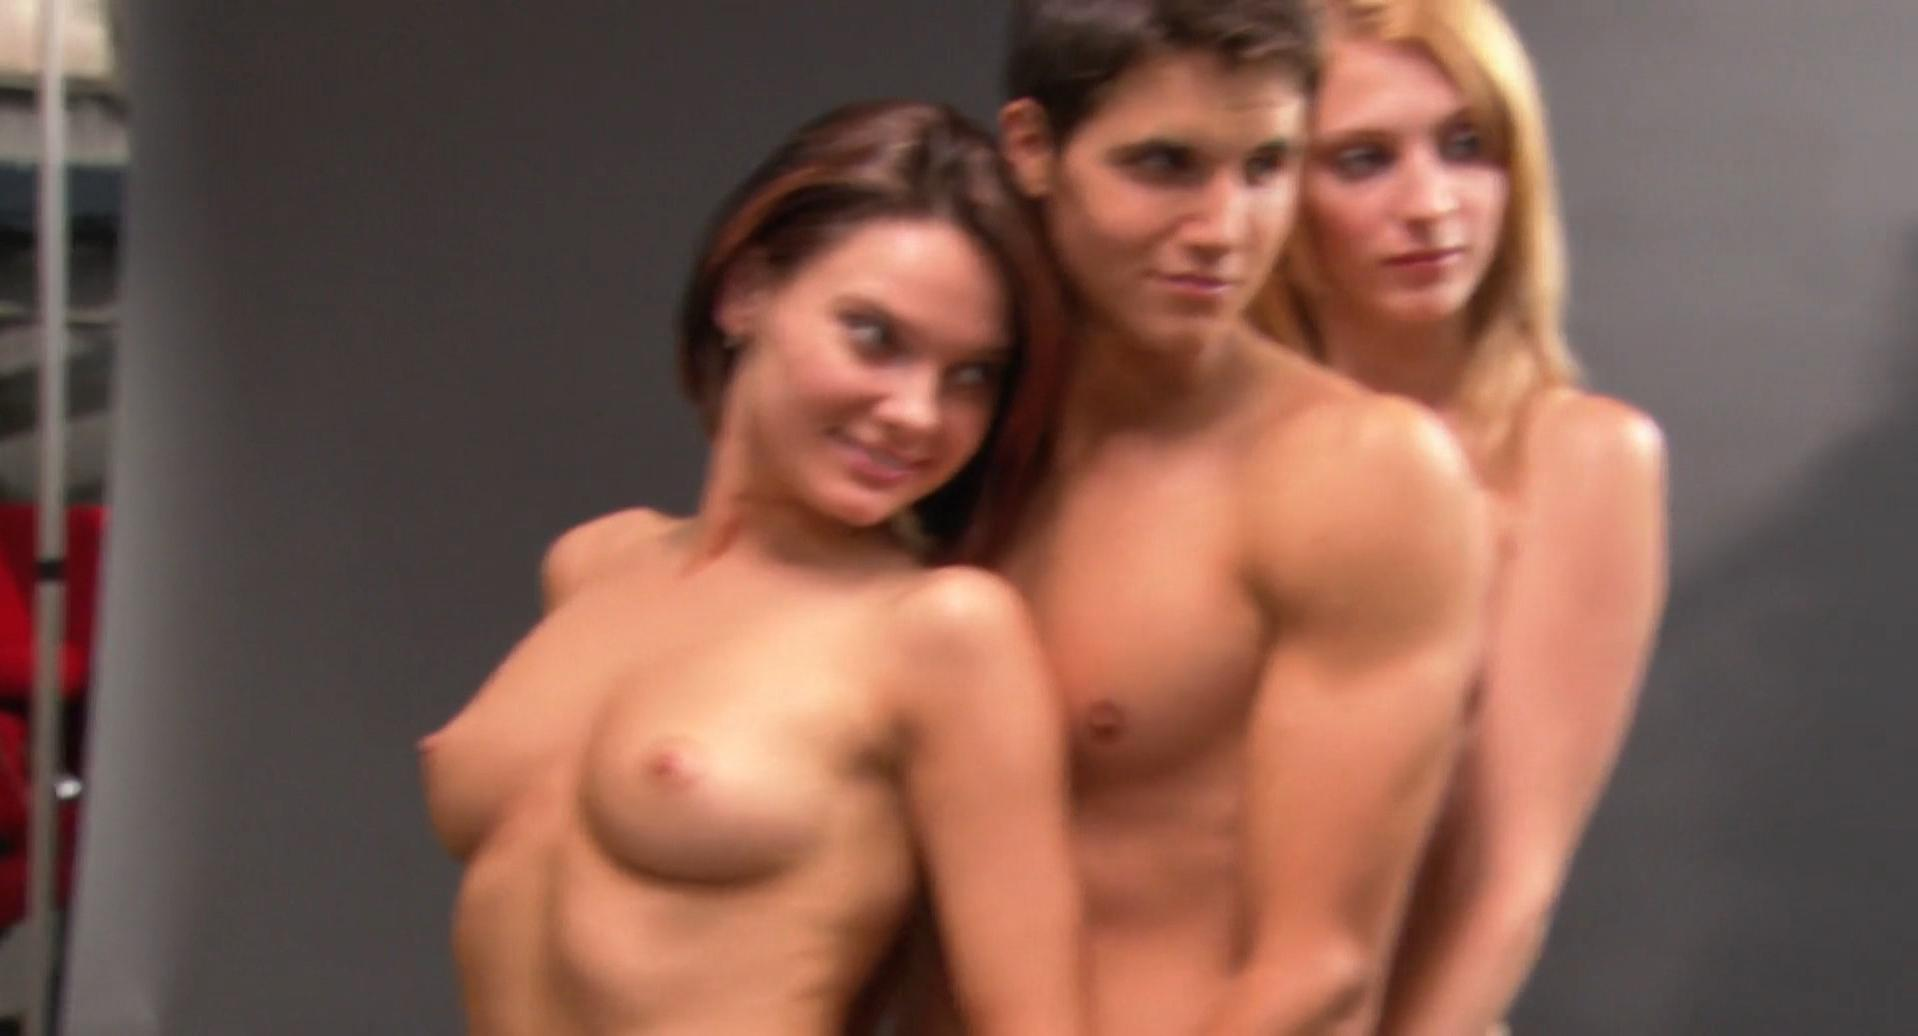 Fucking nn cute models